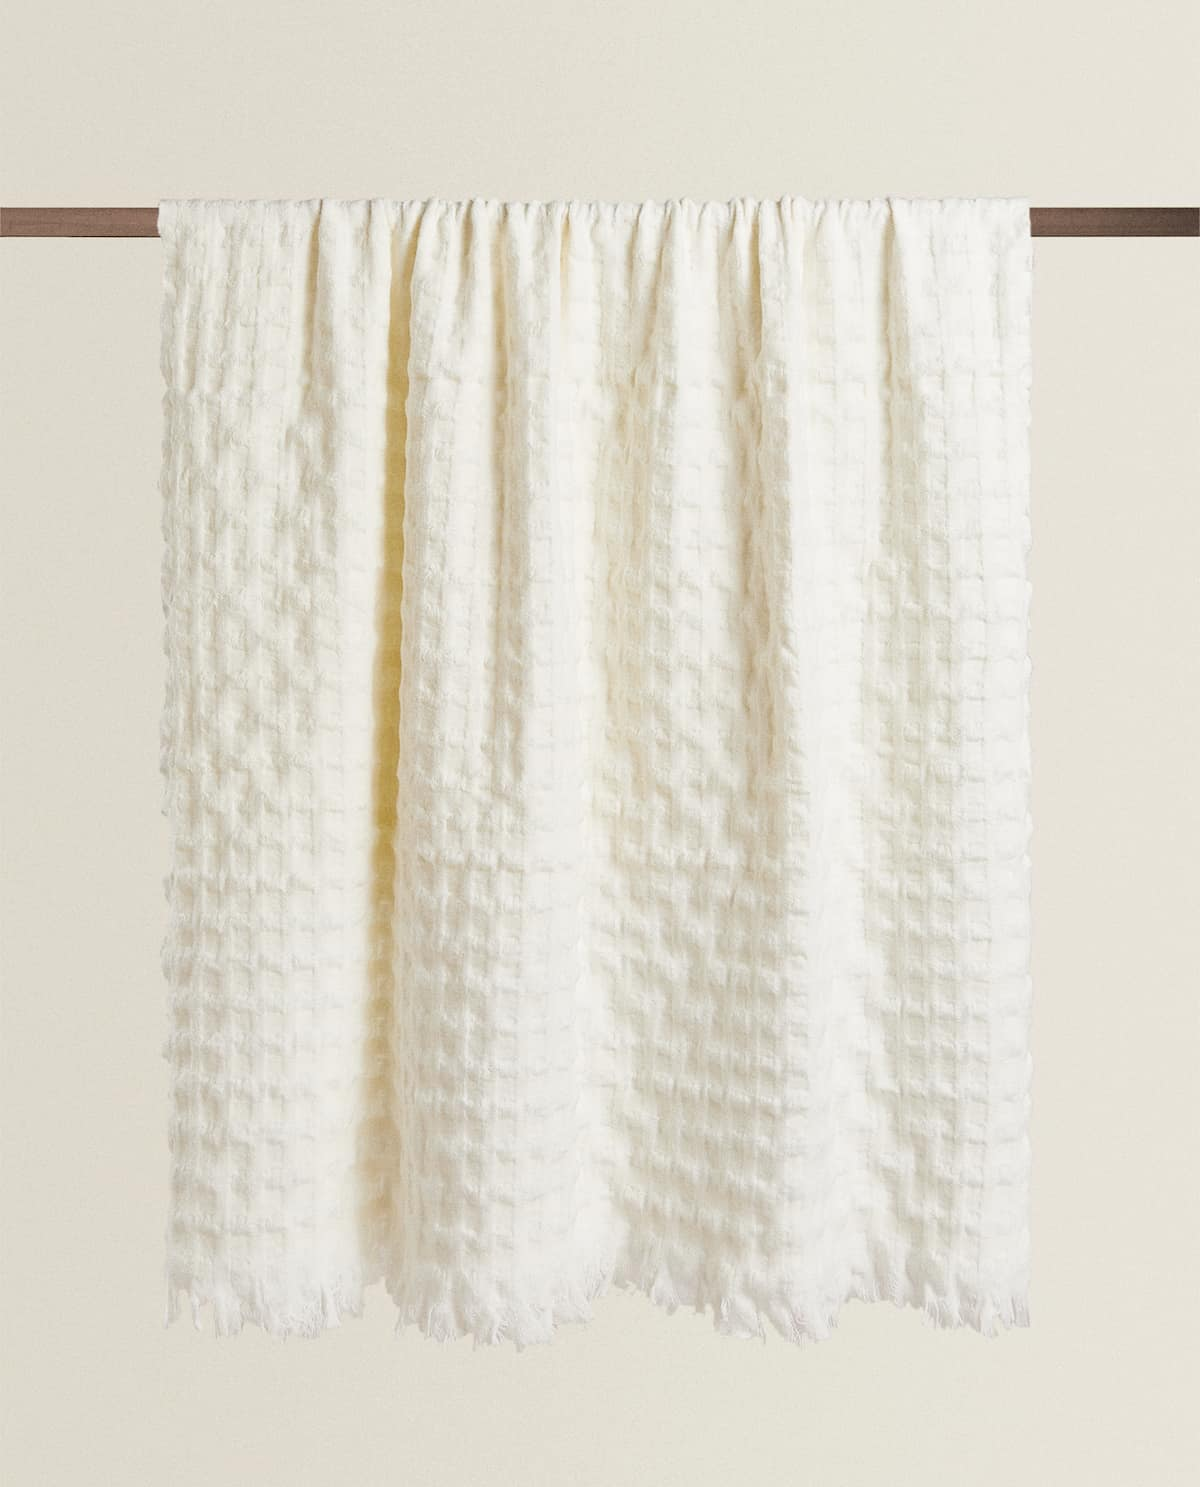 10 Neutral Color Blankets To Fit Your Minimal Home Décor